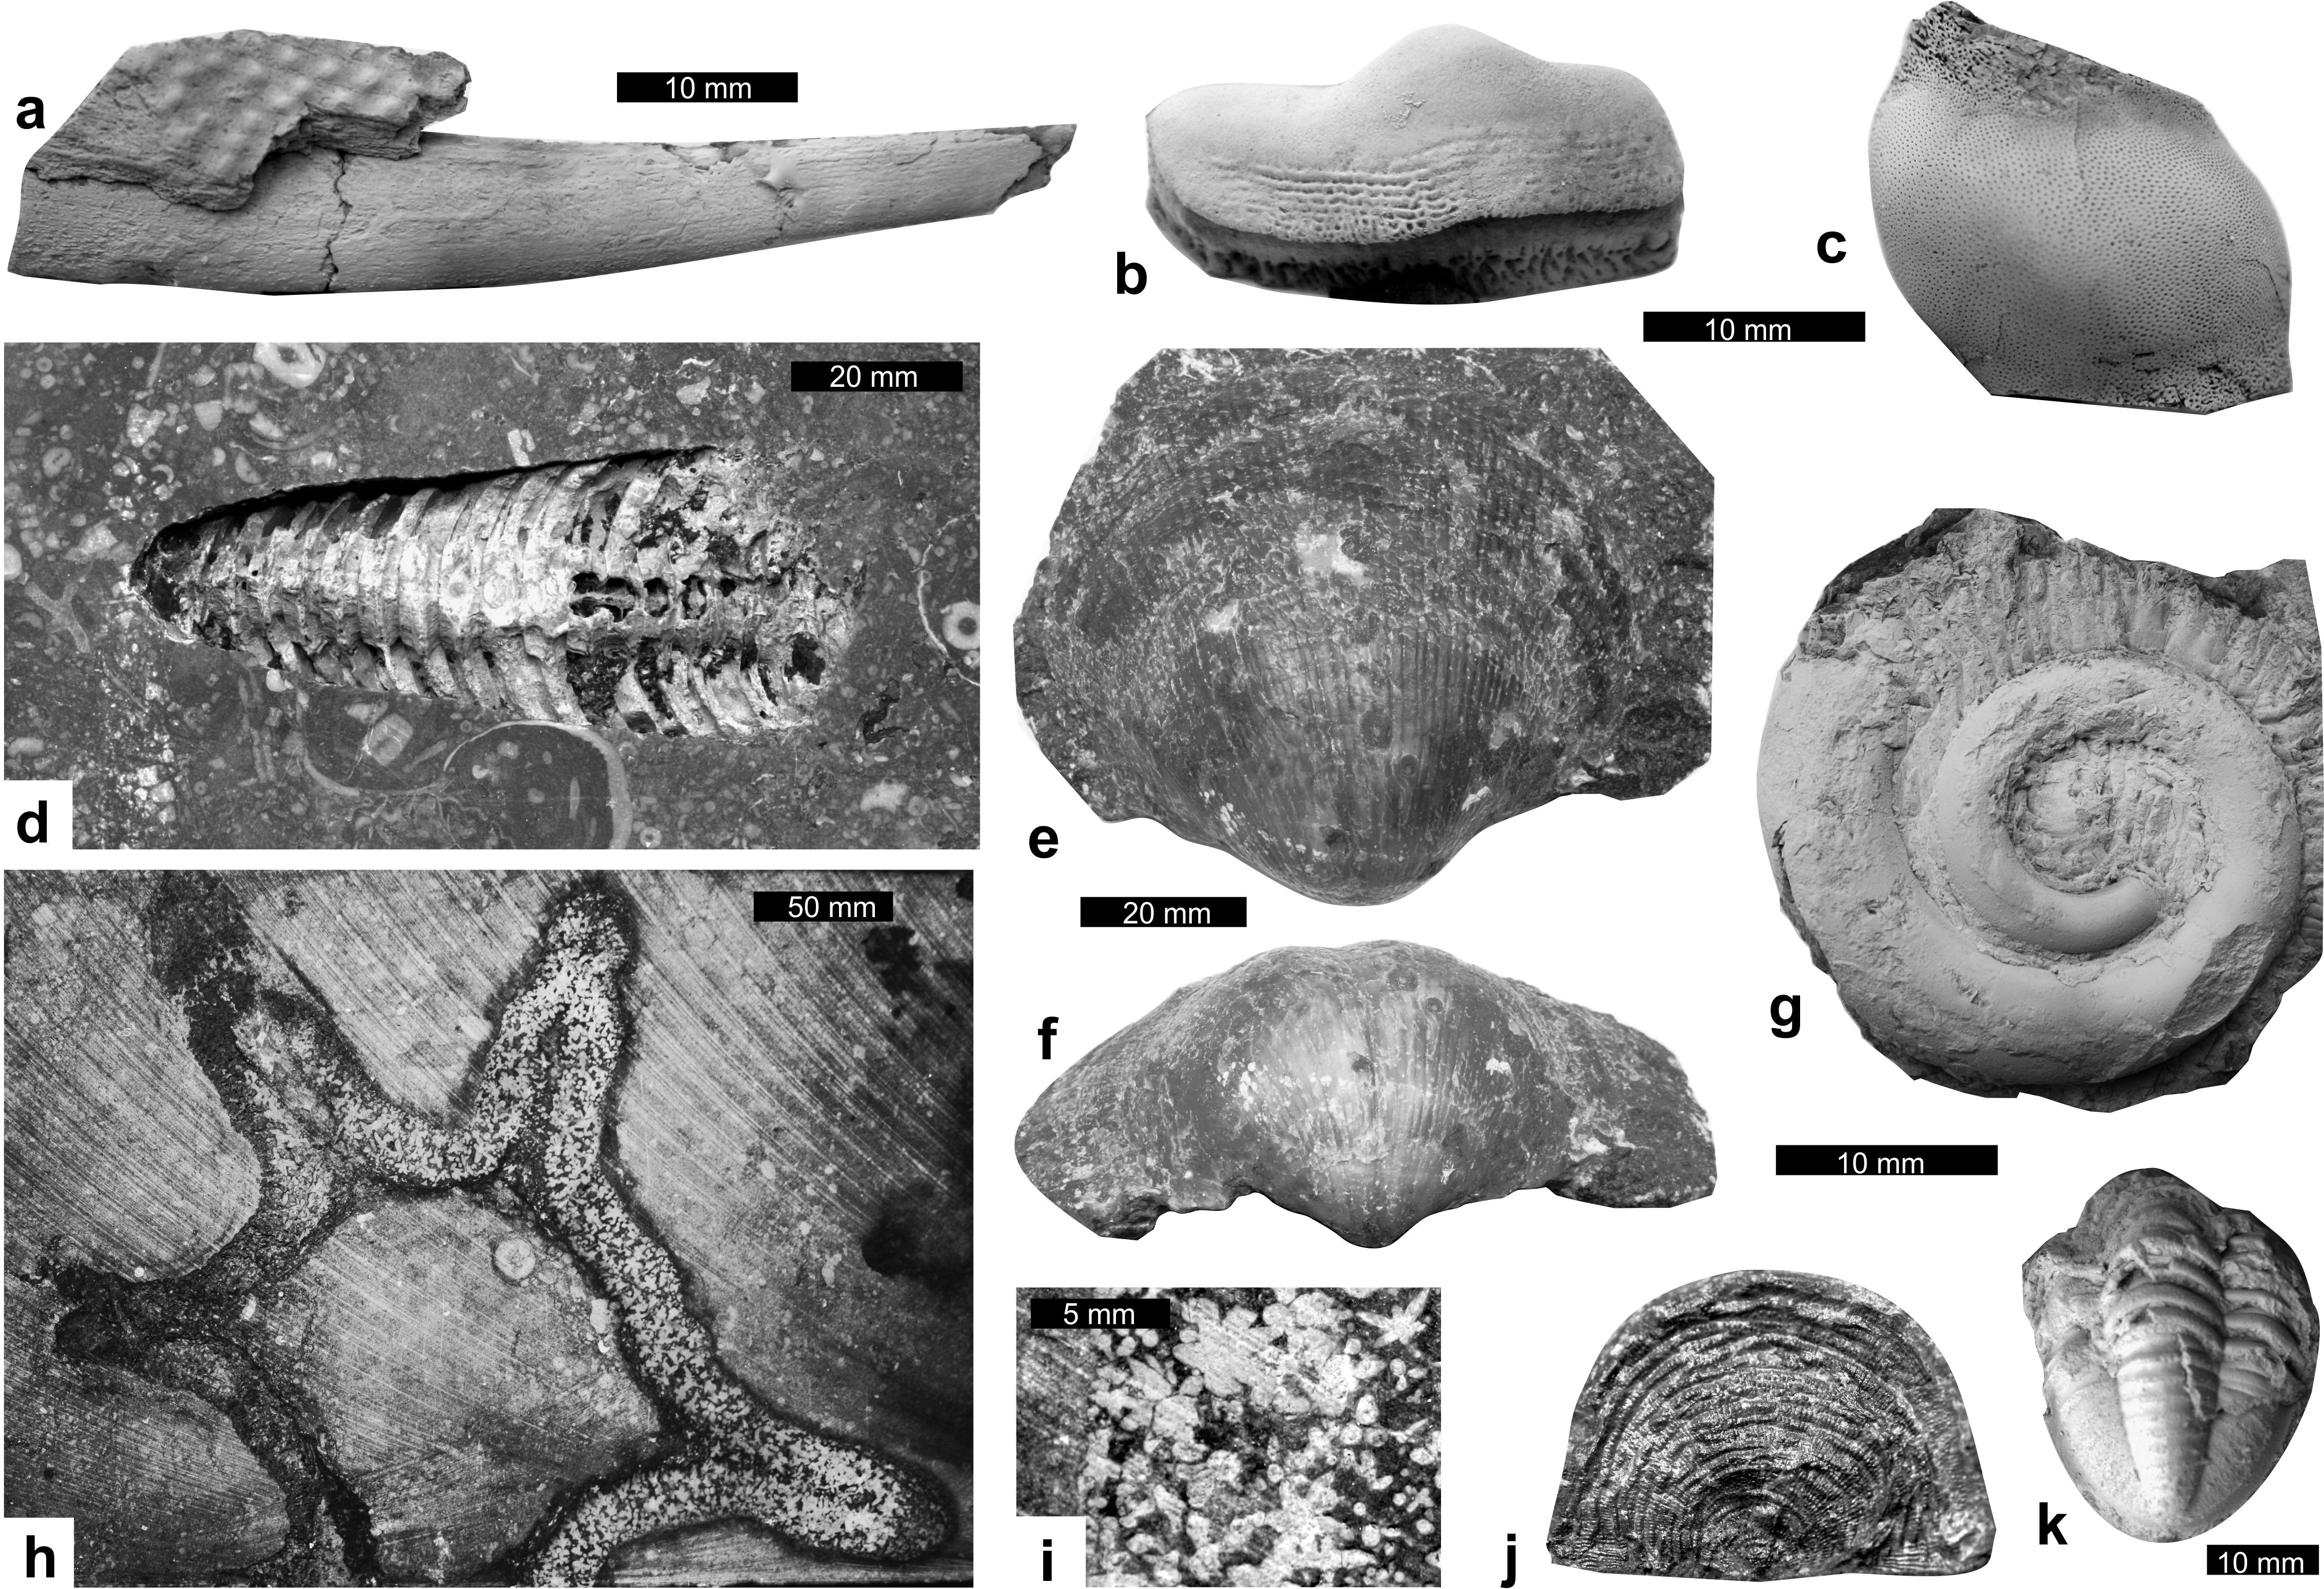 Palaeoecology Of The Upper Tournaisian Mississippian Crinoidal Fossil Jr 1511 68figure 13 Macrofauna Remains From Belgian Encrinite A Undetermined Dorsal Spine Hybodontoid Chondrychthian